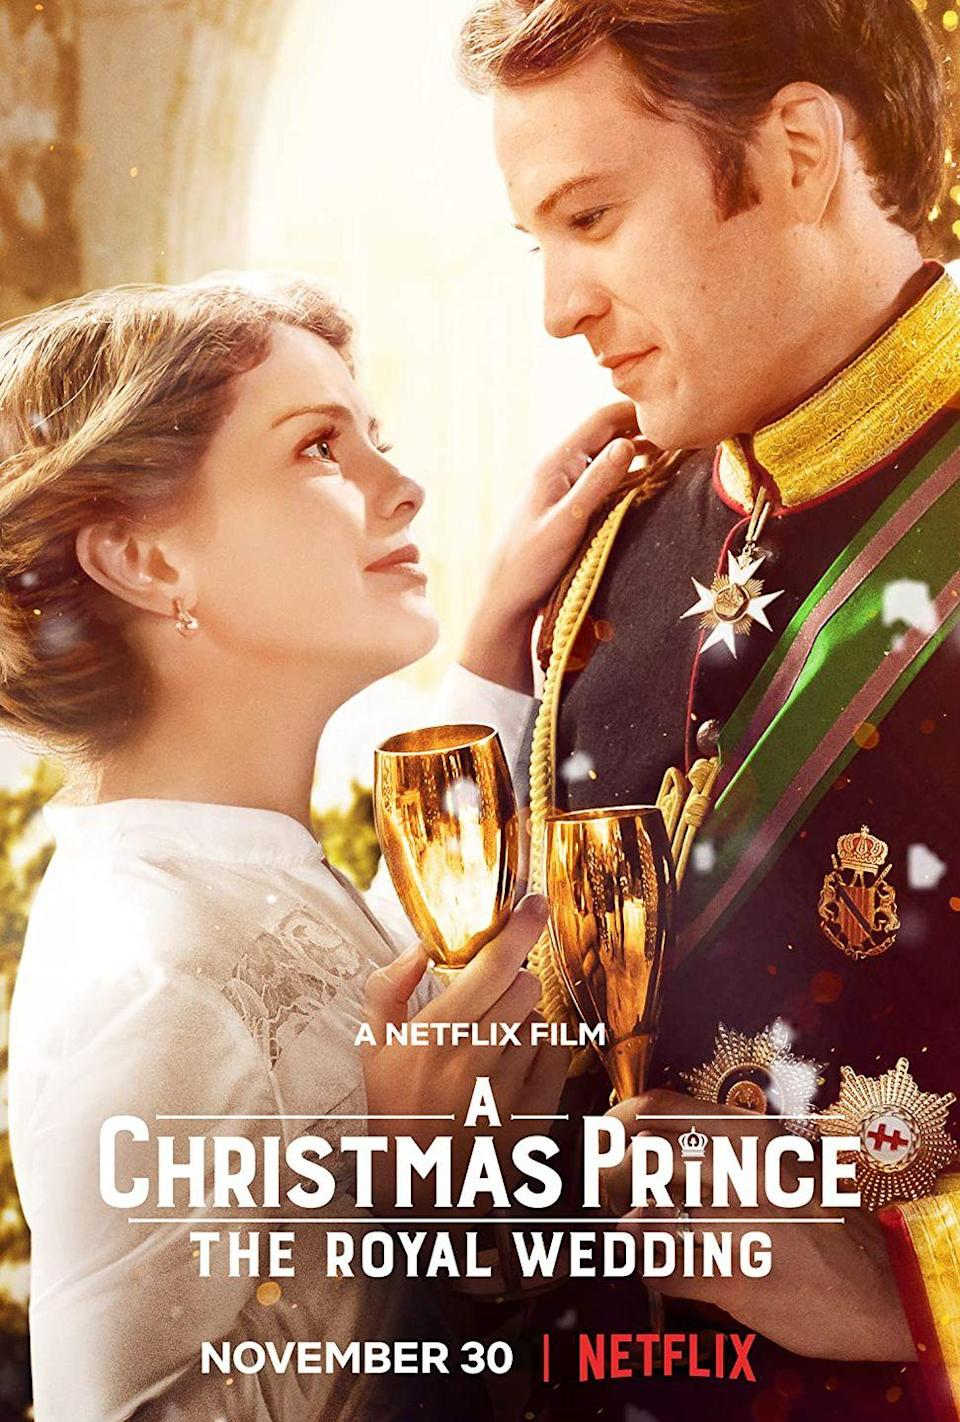 """<p>After people lost their collective sh*t over <em>A Christmas Prince</em>, Netflix did what it does best: make a seriously corny sequel. And, just like another princess-themed franchise (cough, <em>The Princess Diaries,</em> cough) this time, there's a royal wedding going down.Expect ridiculous hijinks, cringe-worthy banter, and truly insane wedding-dress designs. File this Christmas movie under """"So Bad, It's Good.""""</p><p><a class=""""link rapid-noclick-resp"""" href=""""https://www.netflix.com/title/80160759"""" rel=""""nofollow noopener"""" target=""""_blank"""" data-ylk=""""slk:Watch Now"""">Watch Now</a></p>"""